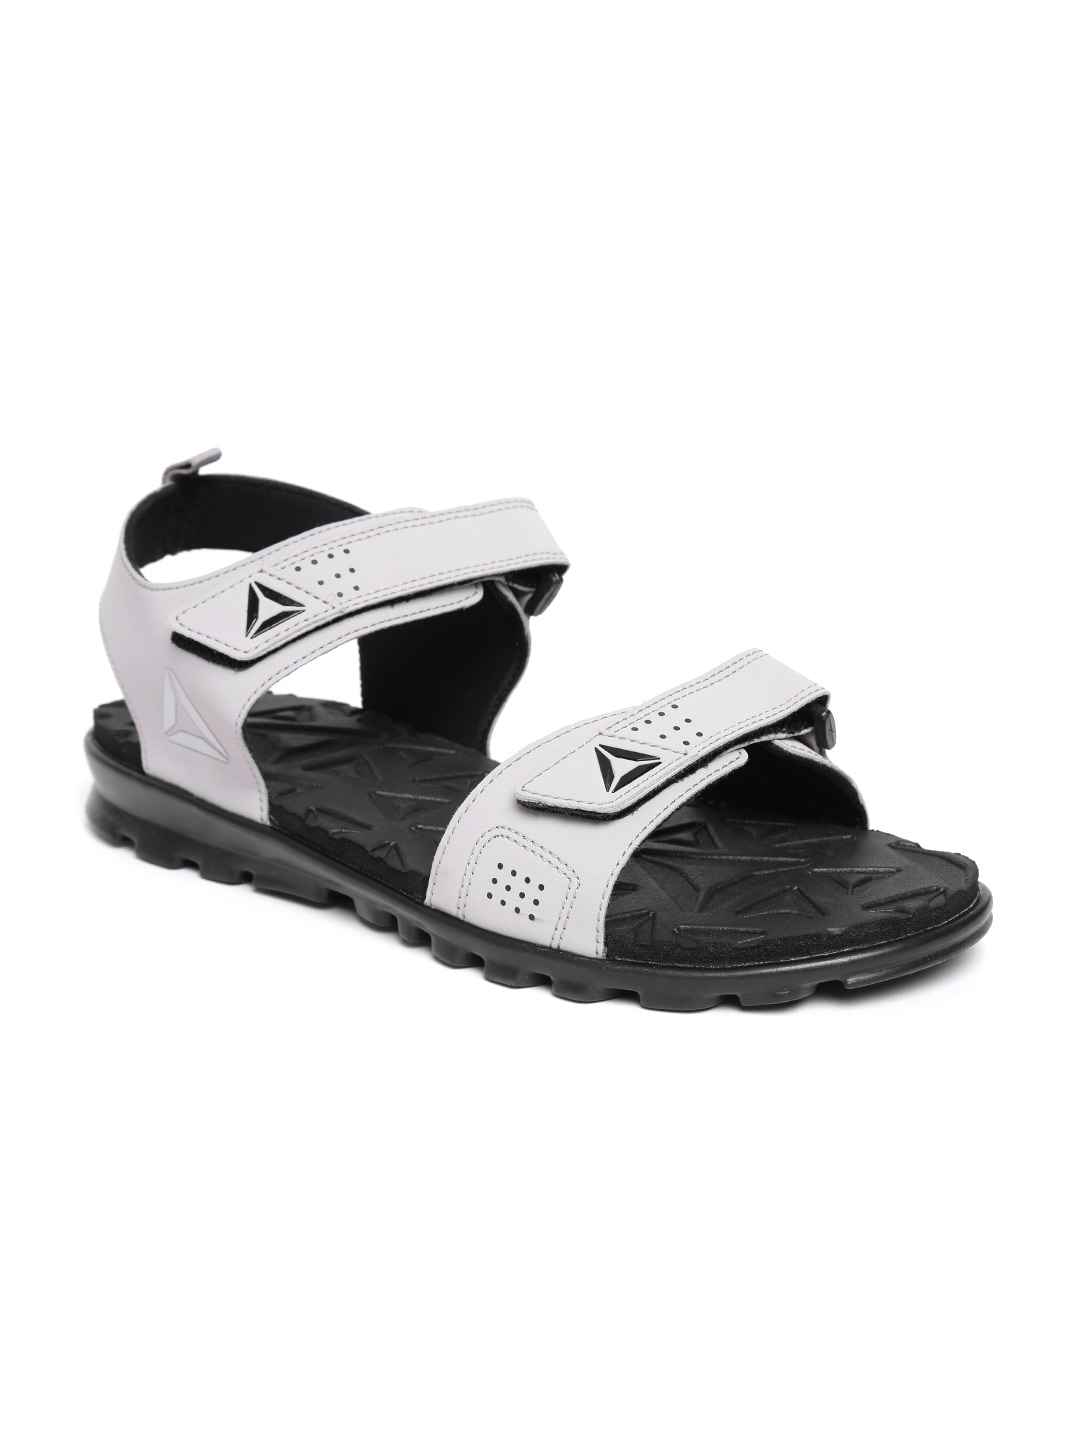 89ca11c4964b Reebok Adidas Sports Sandals Hat - Buy Reebok Adidas Sports Sandals Hat  online in India